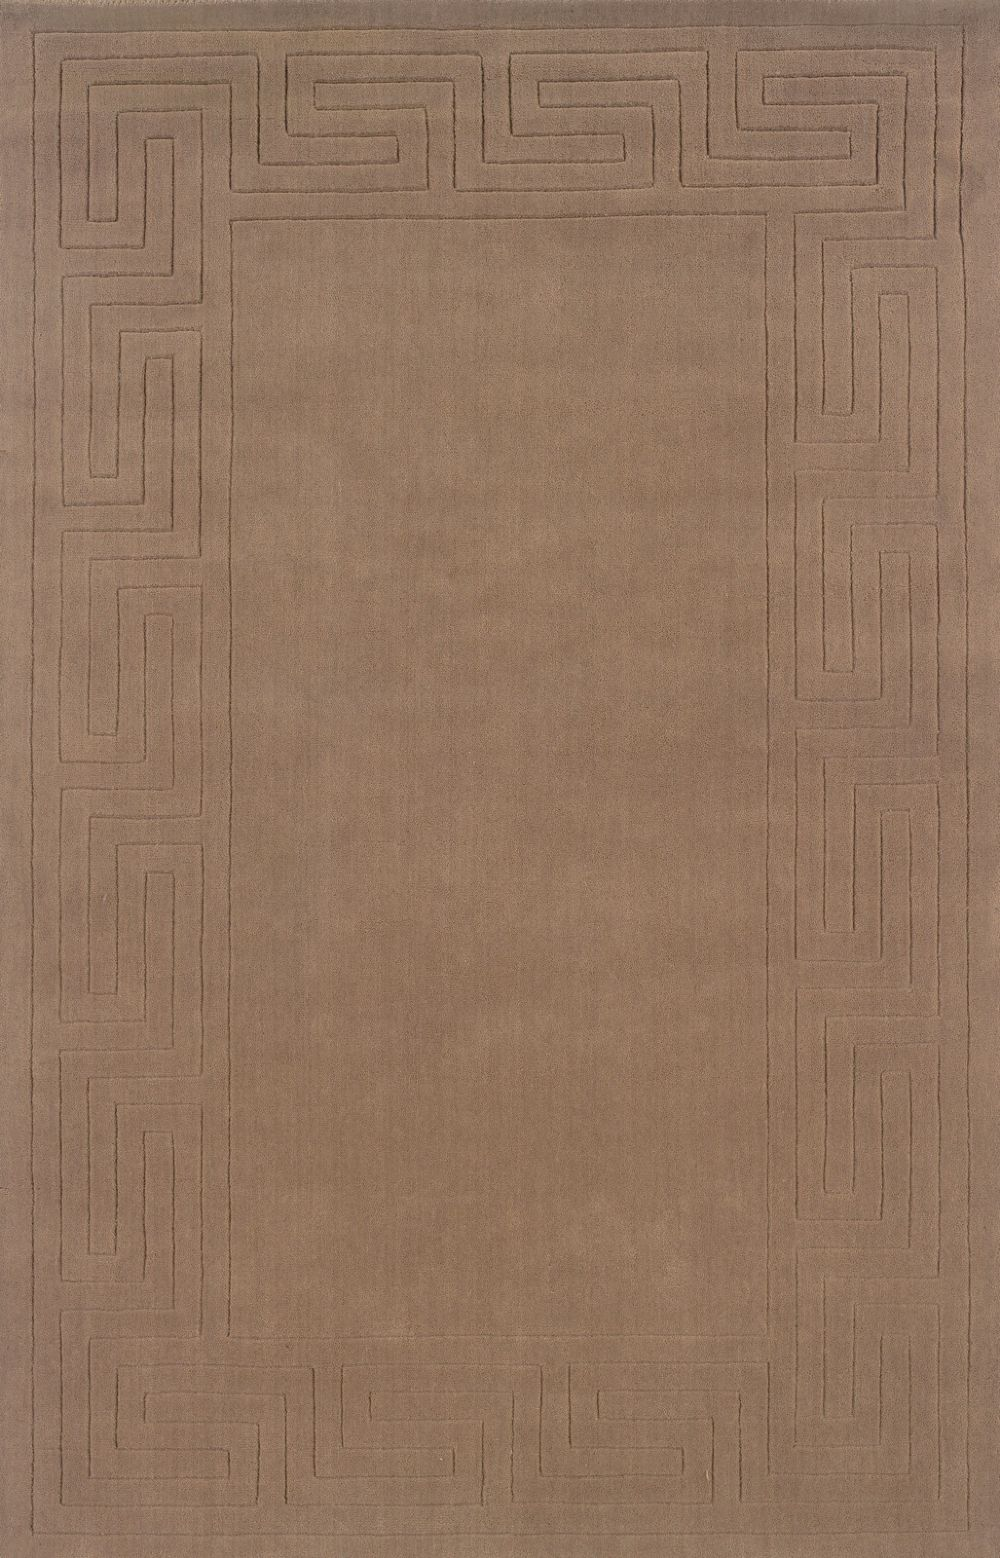 linon classic solid/striped area rug collection